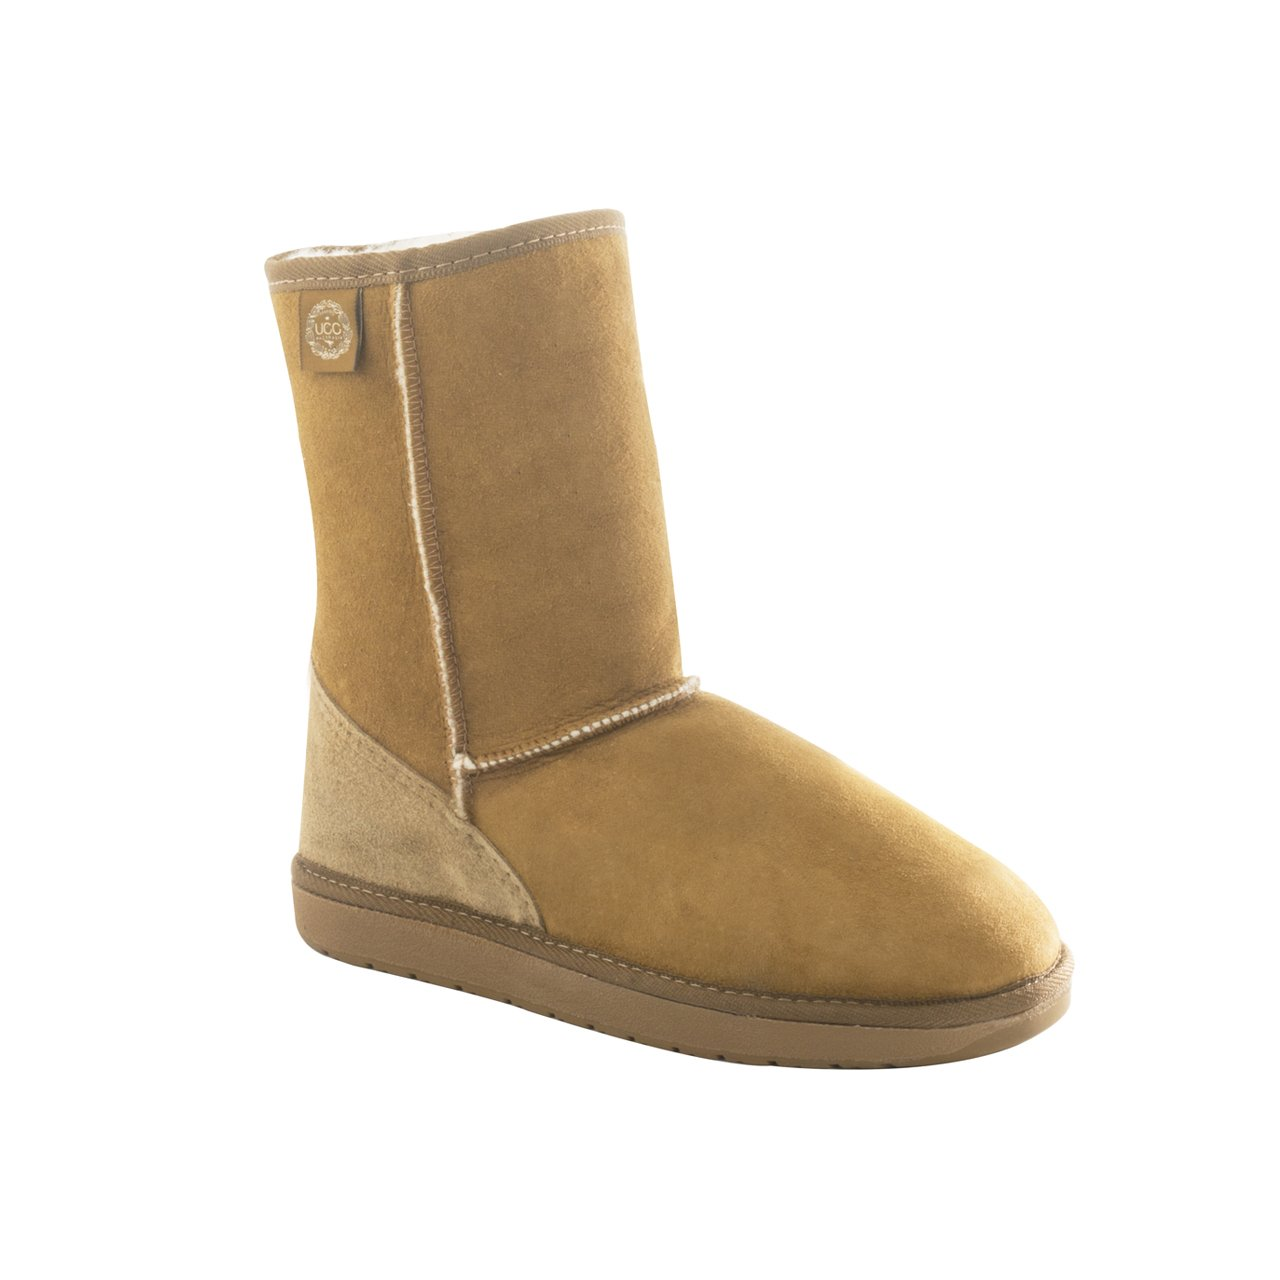 are all uggs made of sheepskin